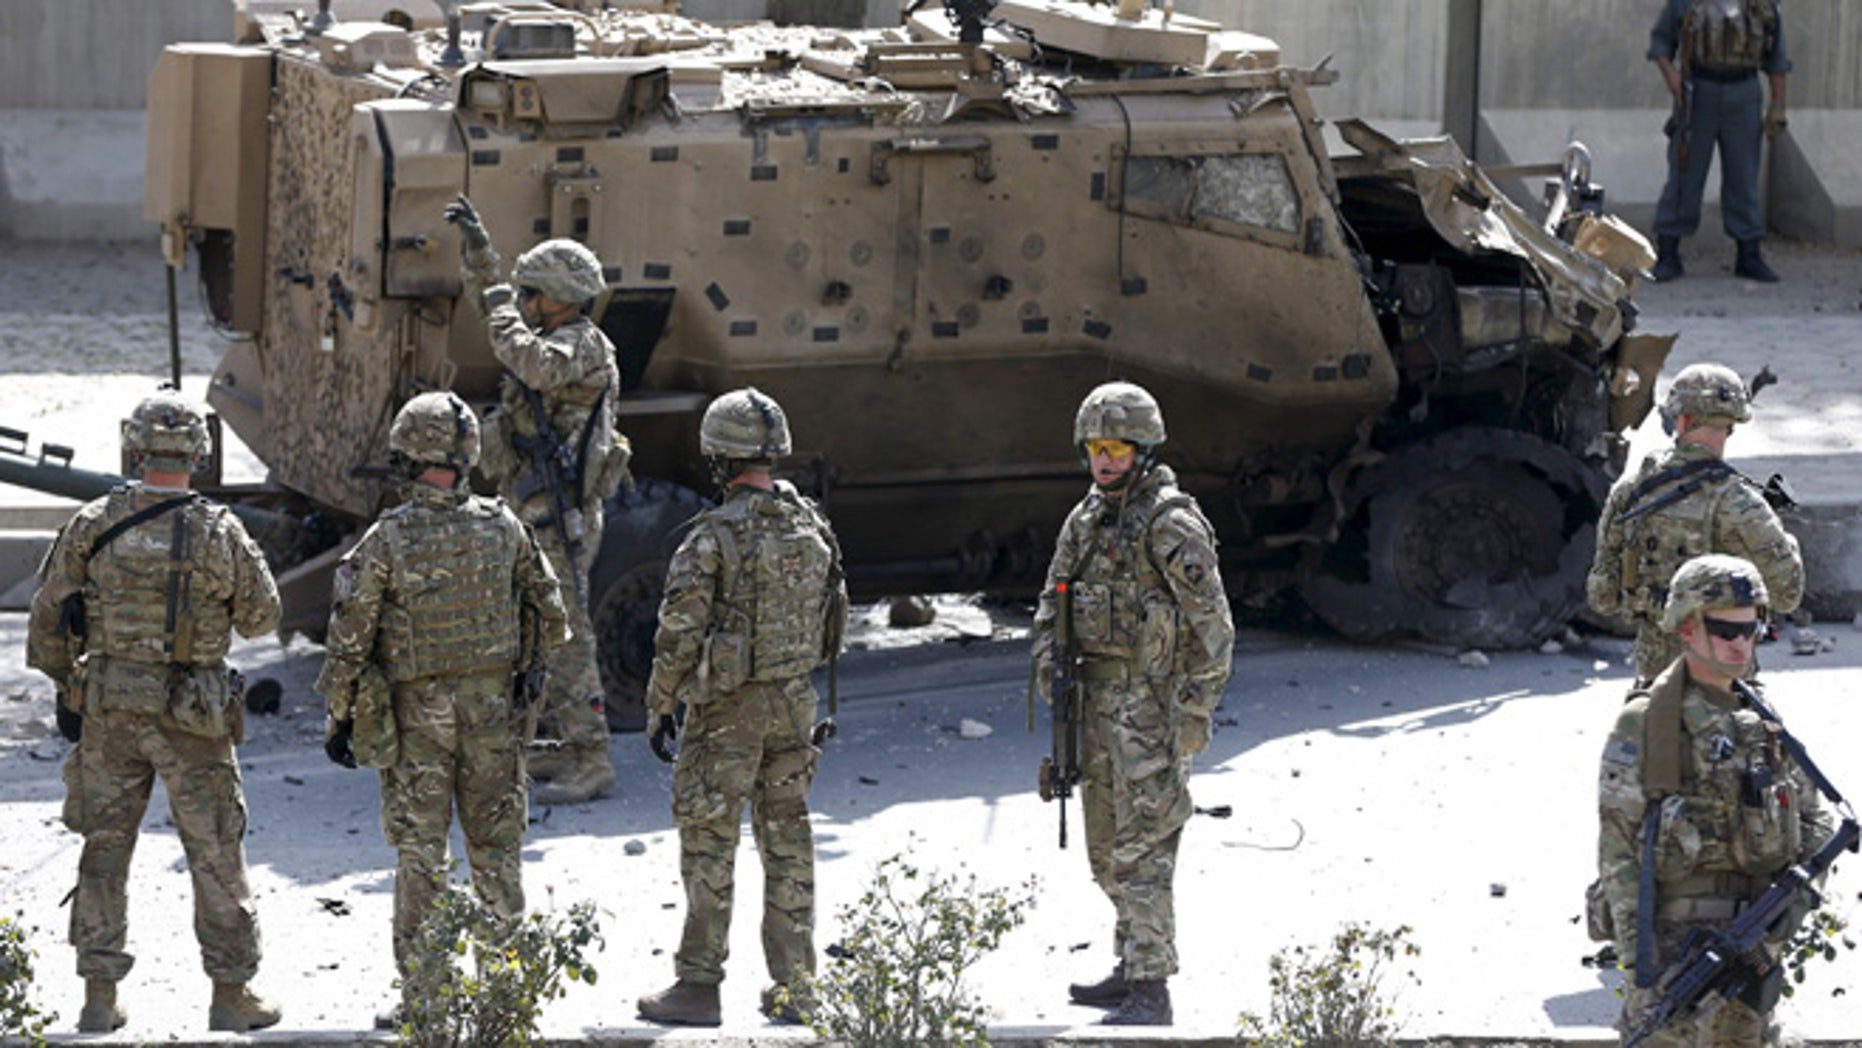 Oct. 11, 2015: NATO soldiers stand near a damaged NATO military vehicle at the site of a suicide car bomb blast in Kabul, Afghanistan.